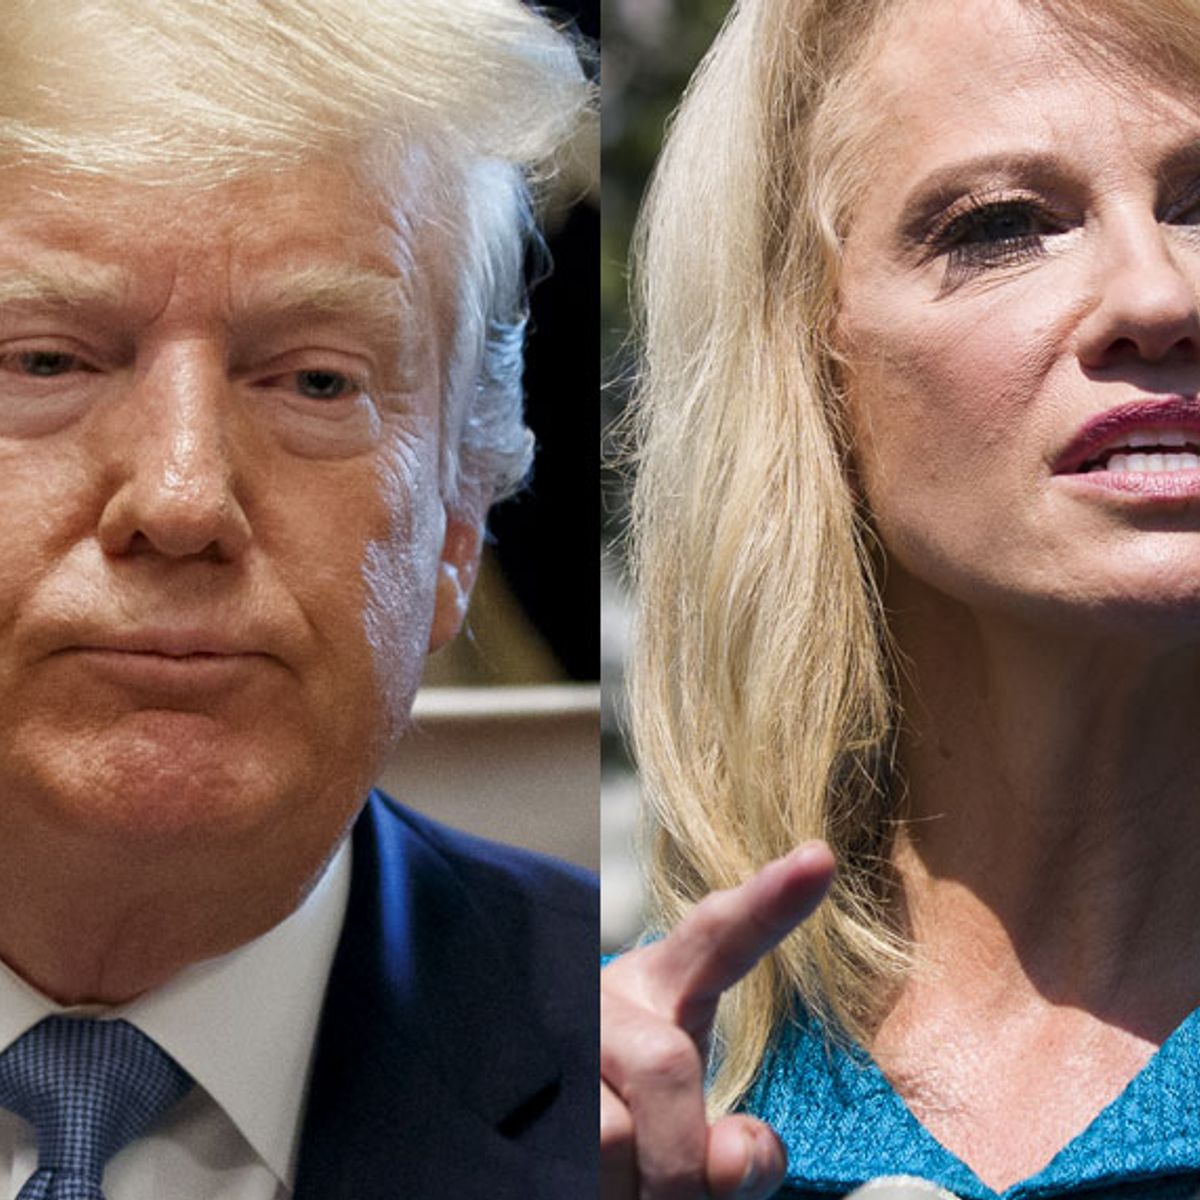 Trump considers replacing Mick Mulvaney with Kellyanne Conway after quid pro quo debacle: report